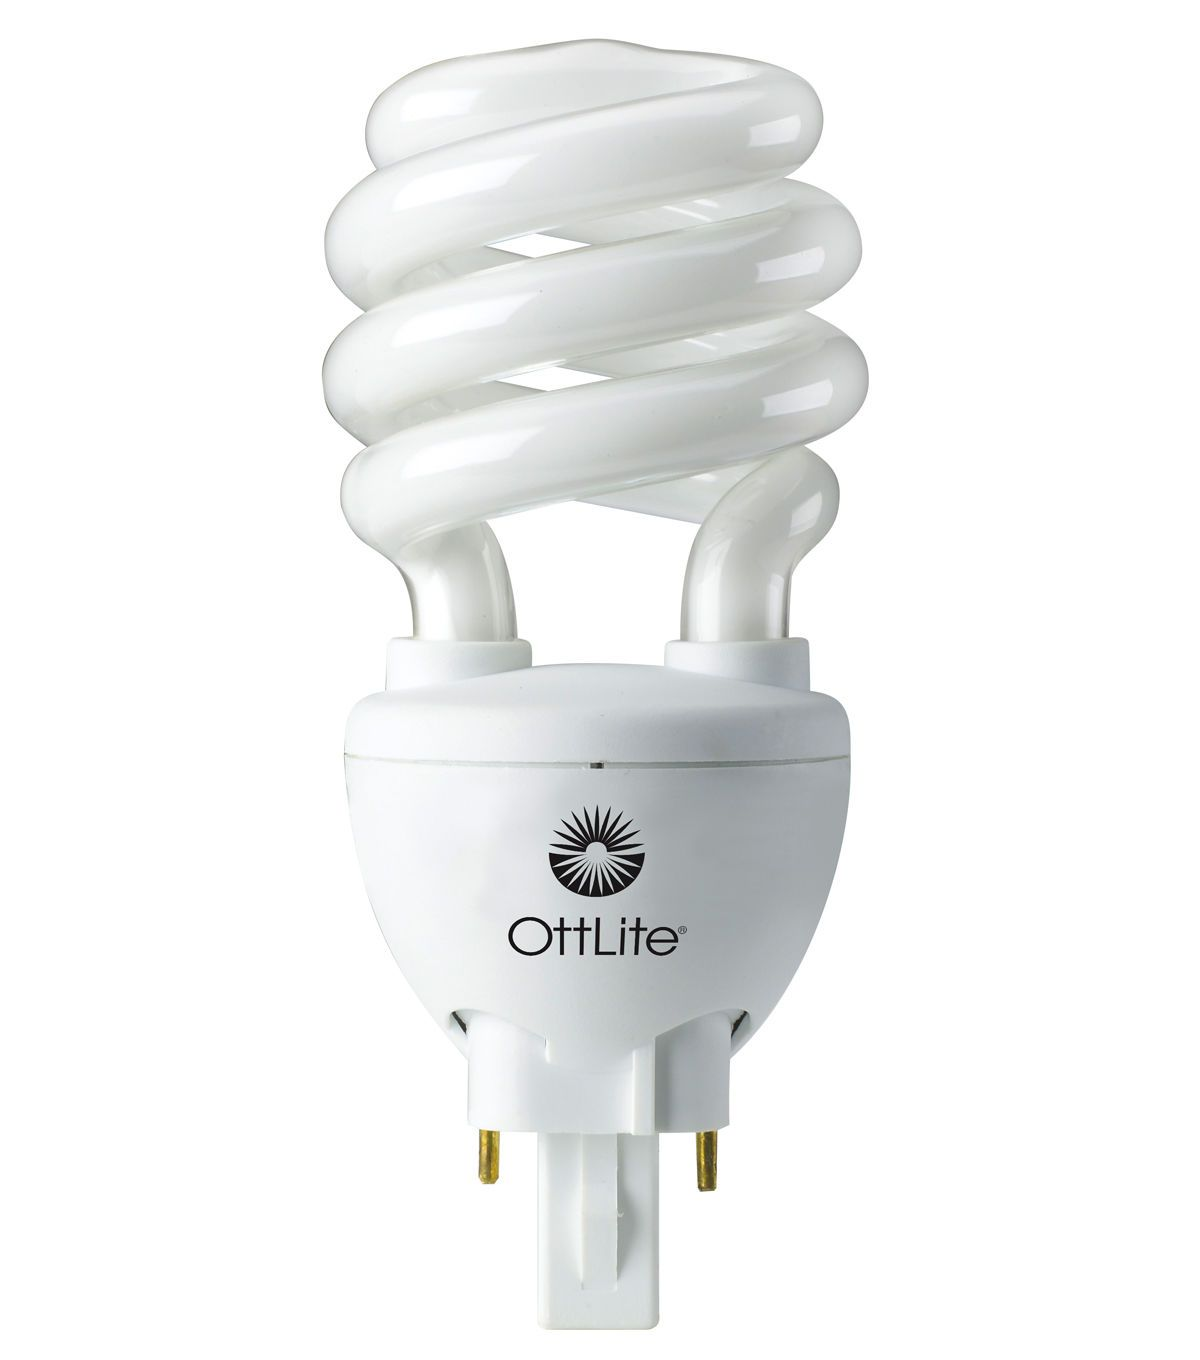 Ottlite 20w Replacement Swirl Plug In Bulb Replacement Type M Bulb Compact Fluorescent Bulbs Light Bulb